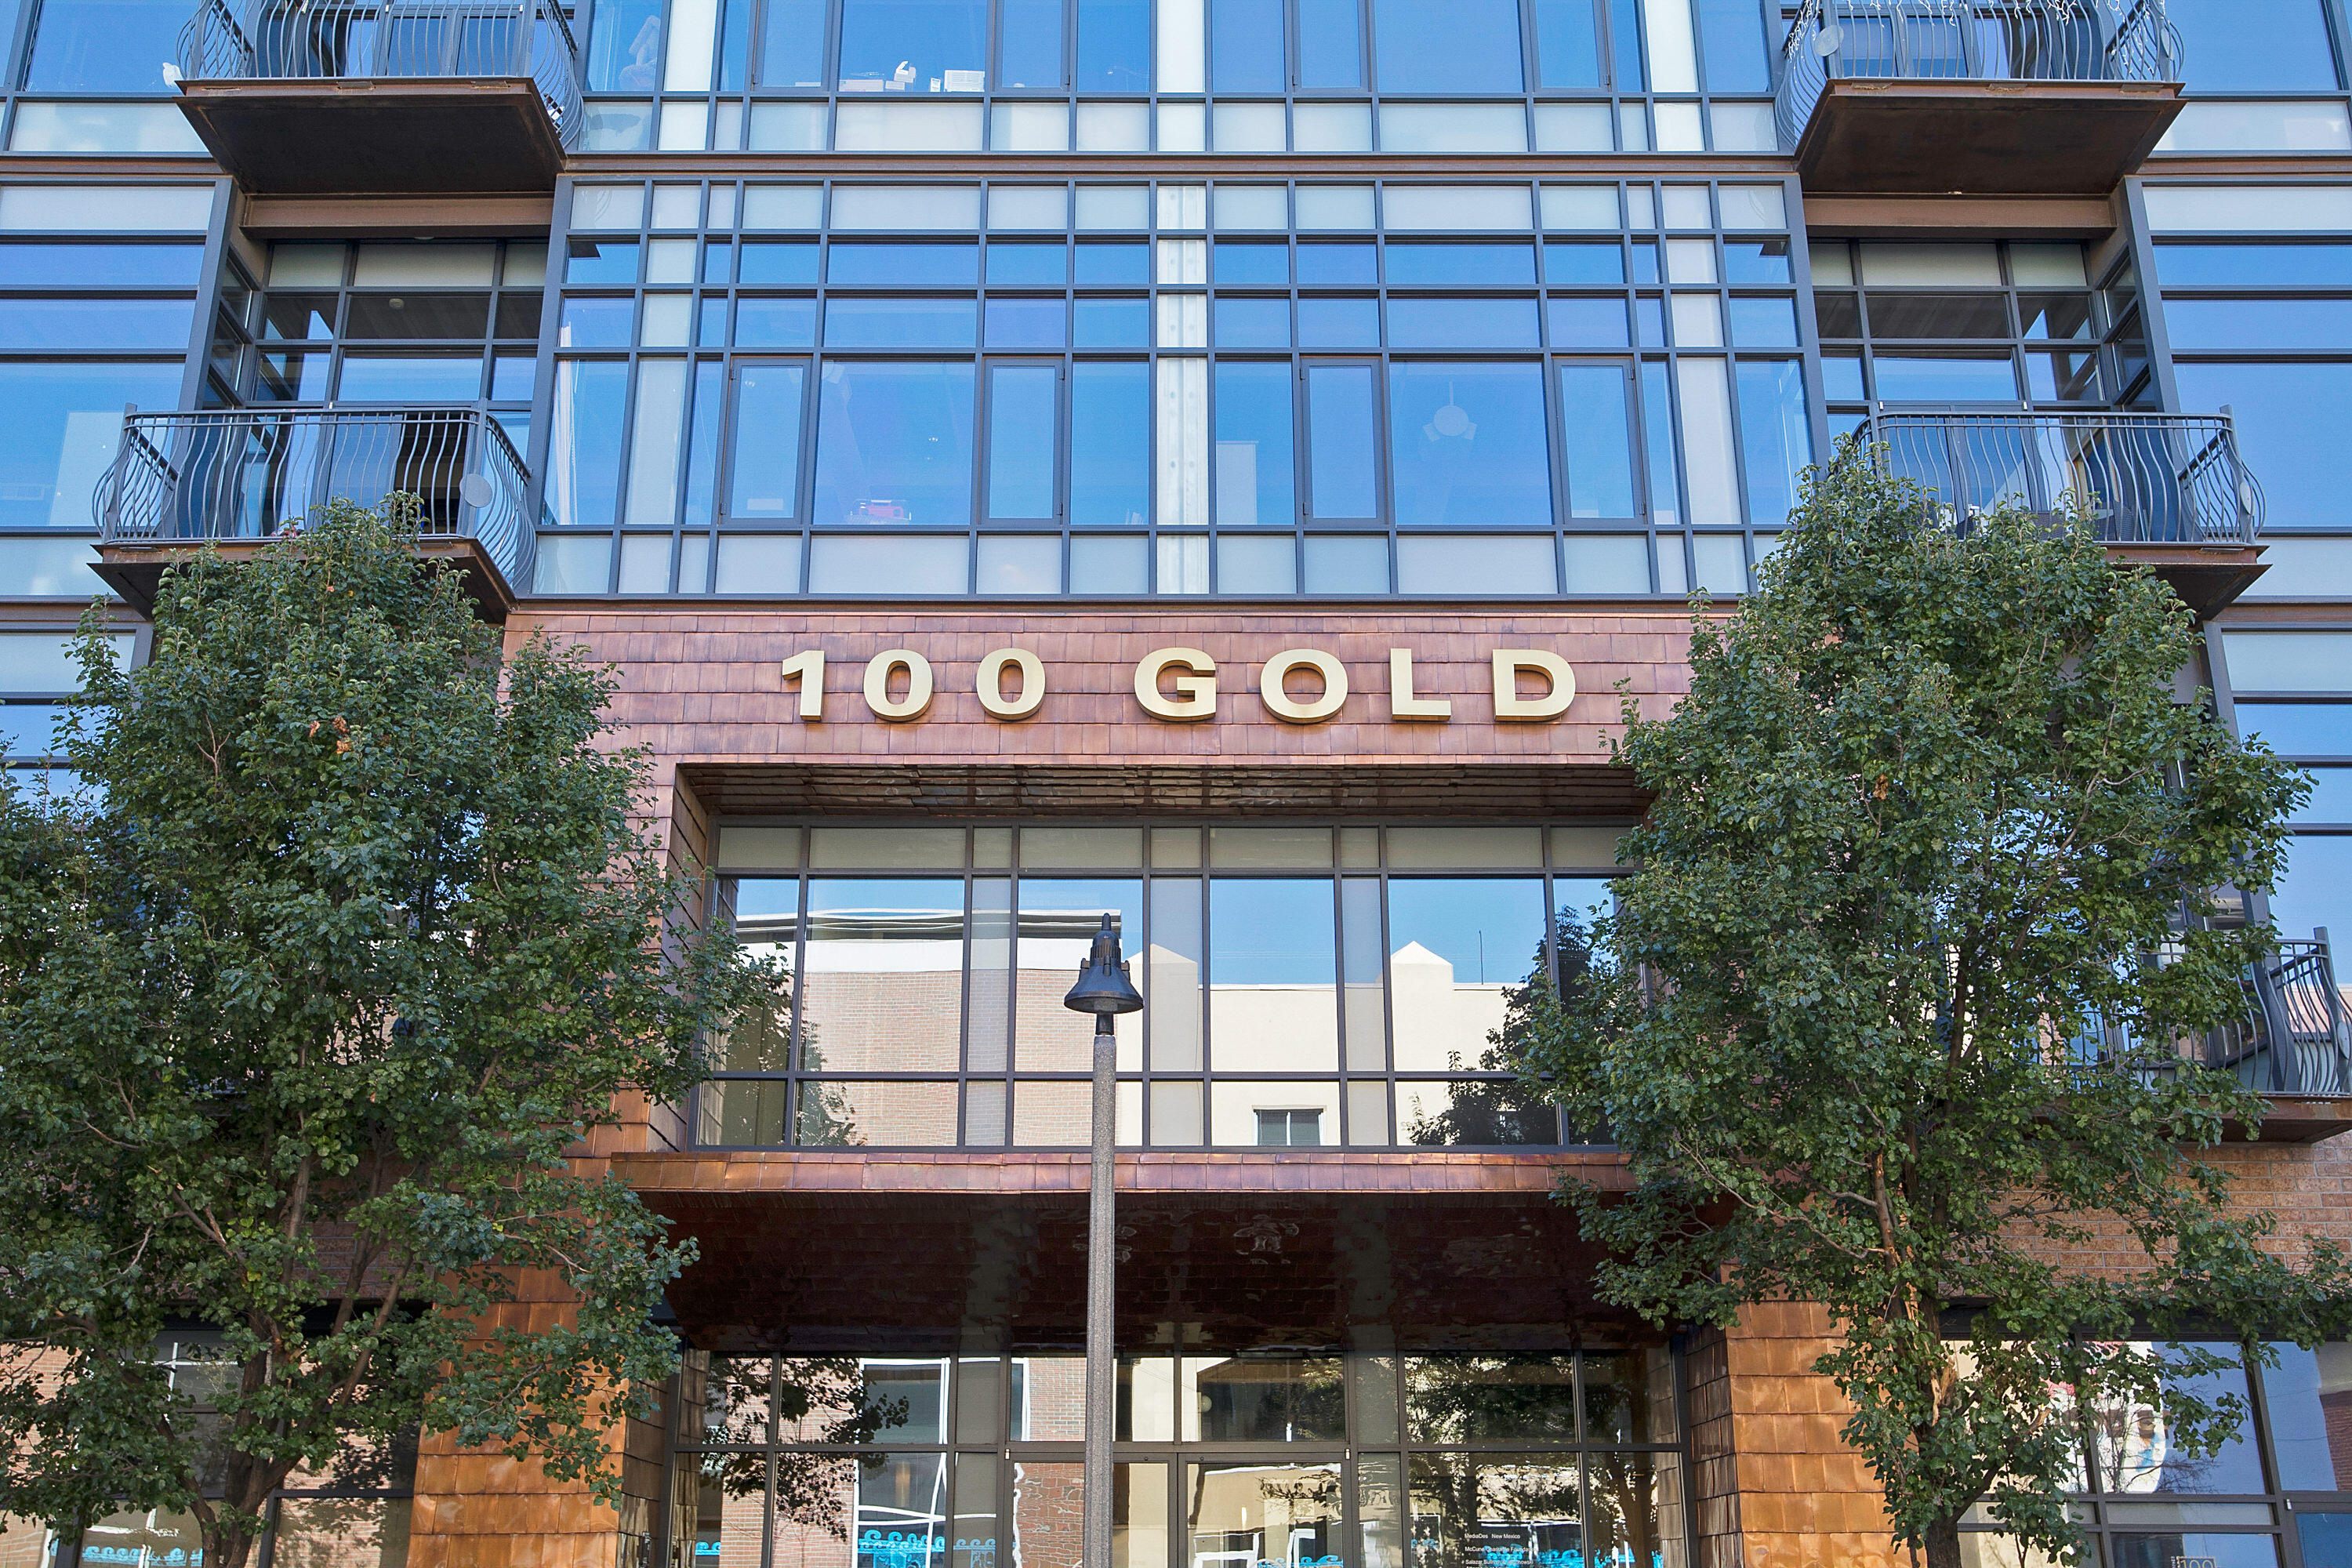 The 100 Gold building is a true gem in the Downtown Albuquerque cityscape. With convenient access to the movies, many dining options, and the Silver Street Market for groceries, everything you need is here! You will adore the high ceilings in your condo, with plenty of natural lighting pouring in from the northern and western high windows. On your private balcony, the views of downtown will blow you away. Your corner loft has a special Live/Work Designation, meaning your life AND your business can thrive! The unit features bamboo flooring, a modern kitchen with bar, stainless appliances, modern design touches, and a spacious north-facing bedroom. The building is securely accessible with a FOB, and each unit has one fully secured, covered, gate-protected parking spot.